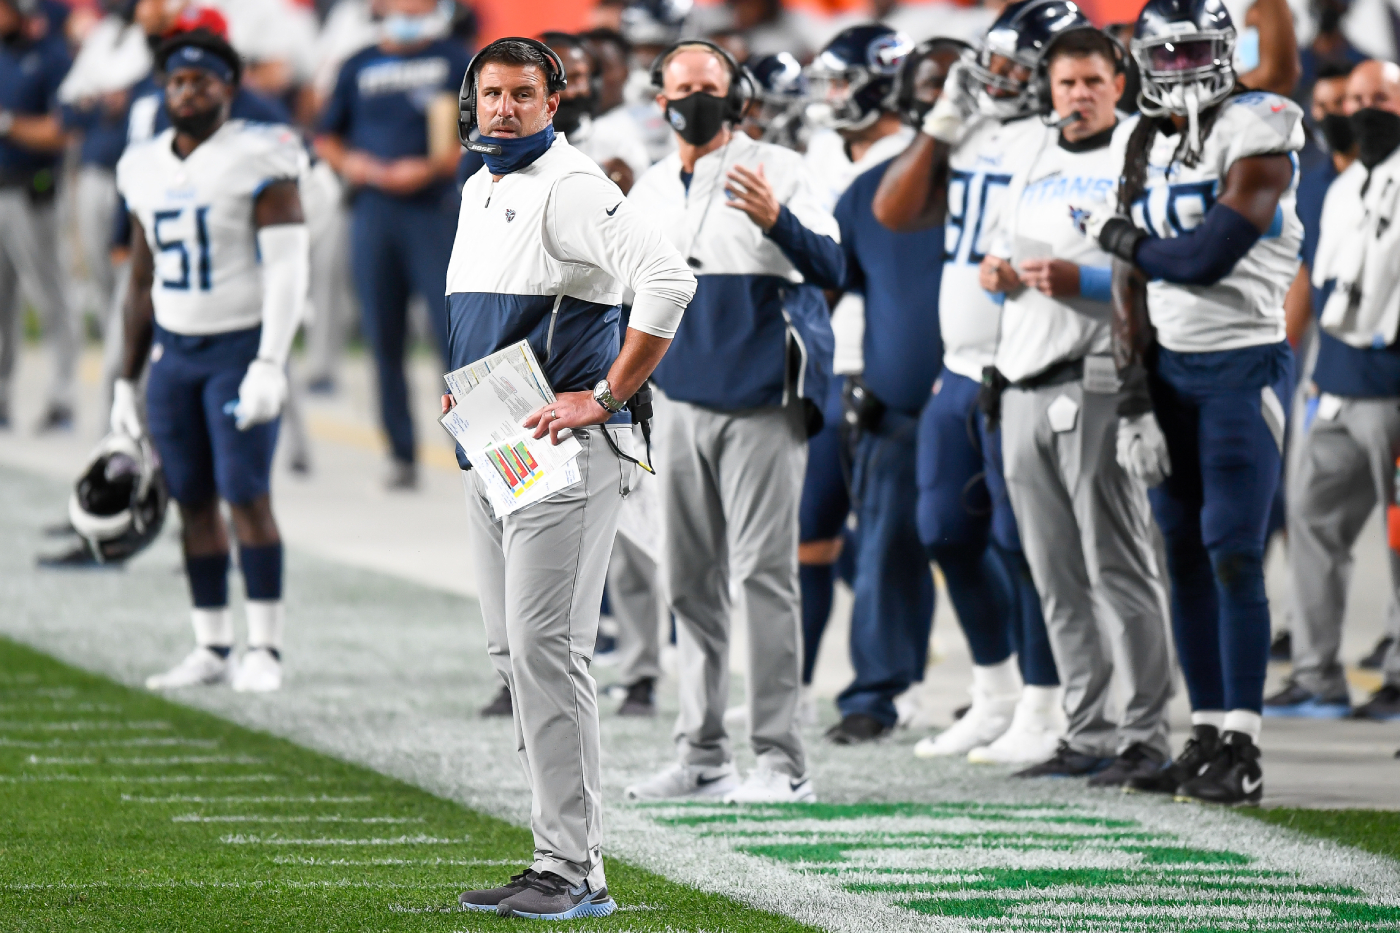 The Tennessee Titans are one of the best teams in the NFL. However, they just admitted that they made a $9.5 million mistake with Vic Beasley.